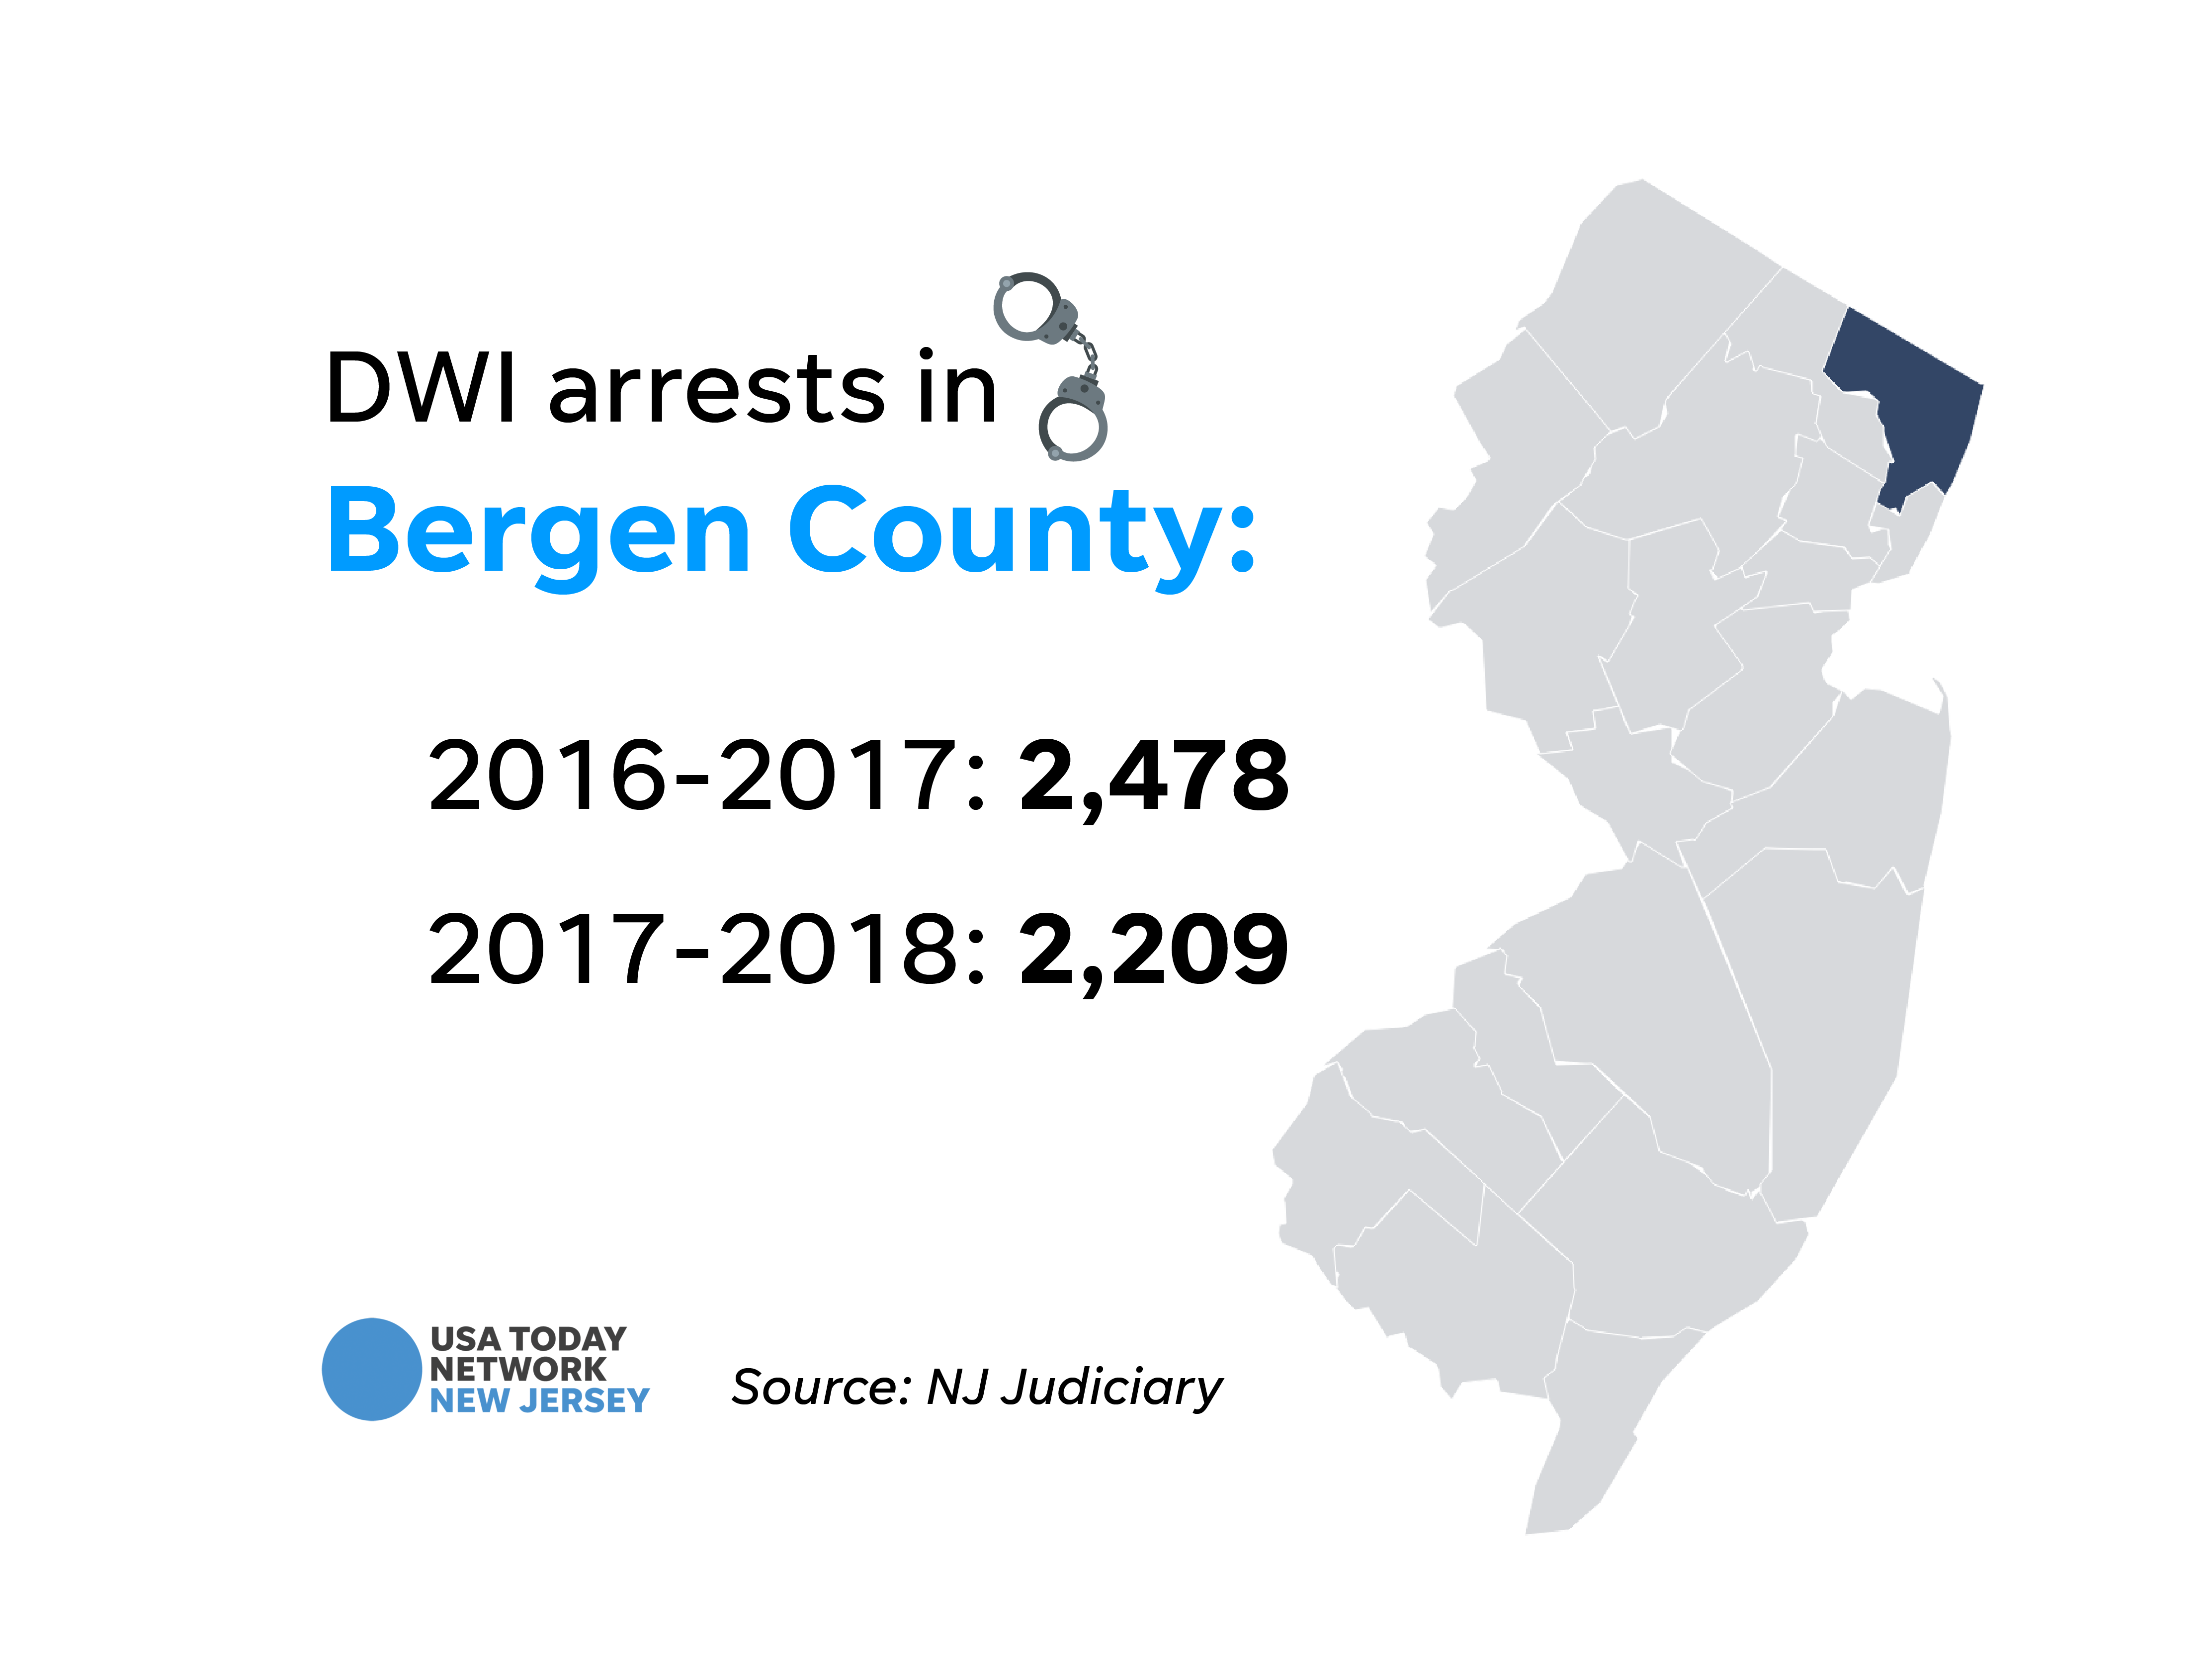 DWI arrests in Bergen County.